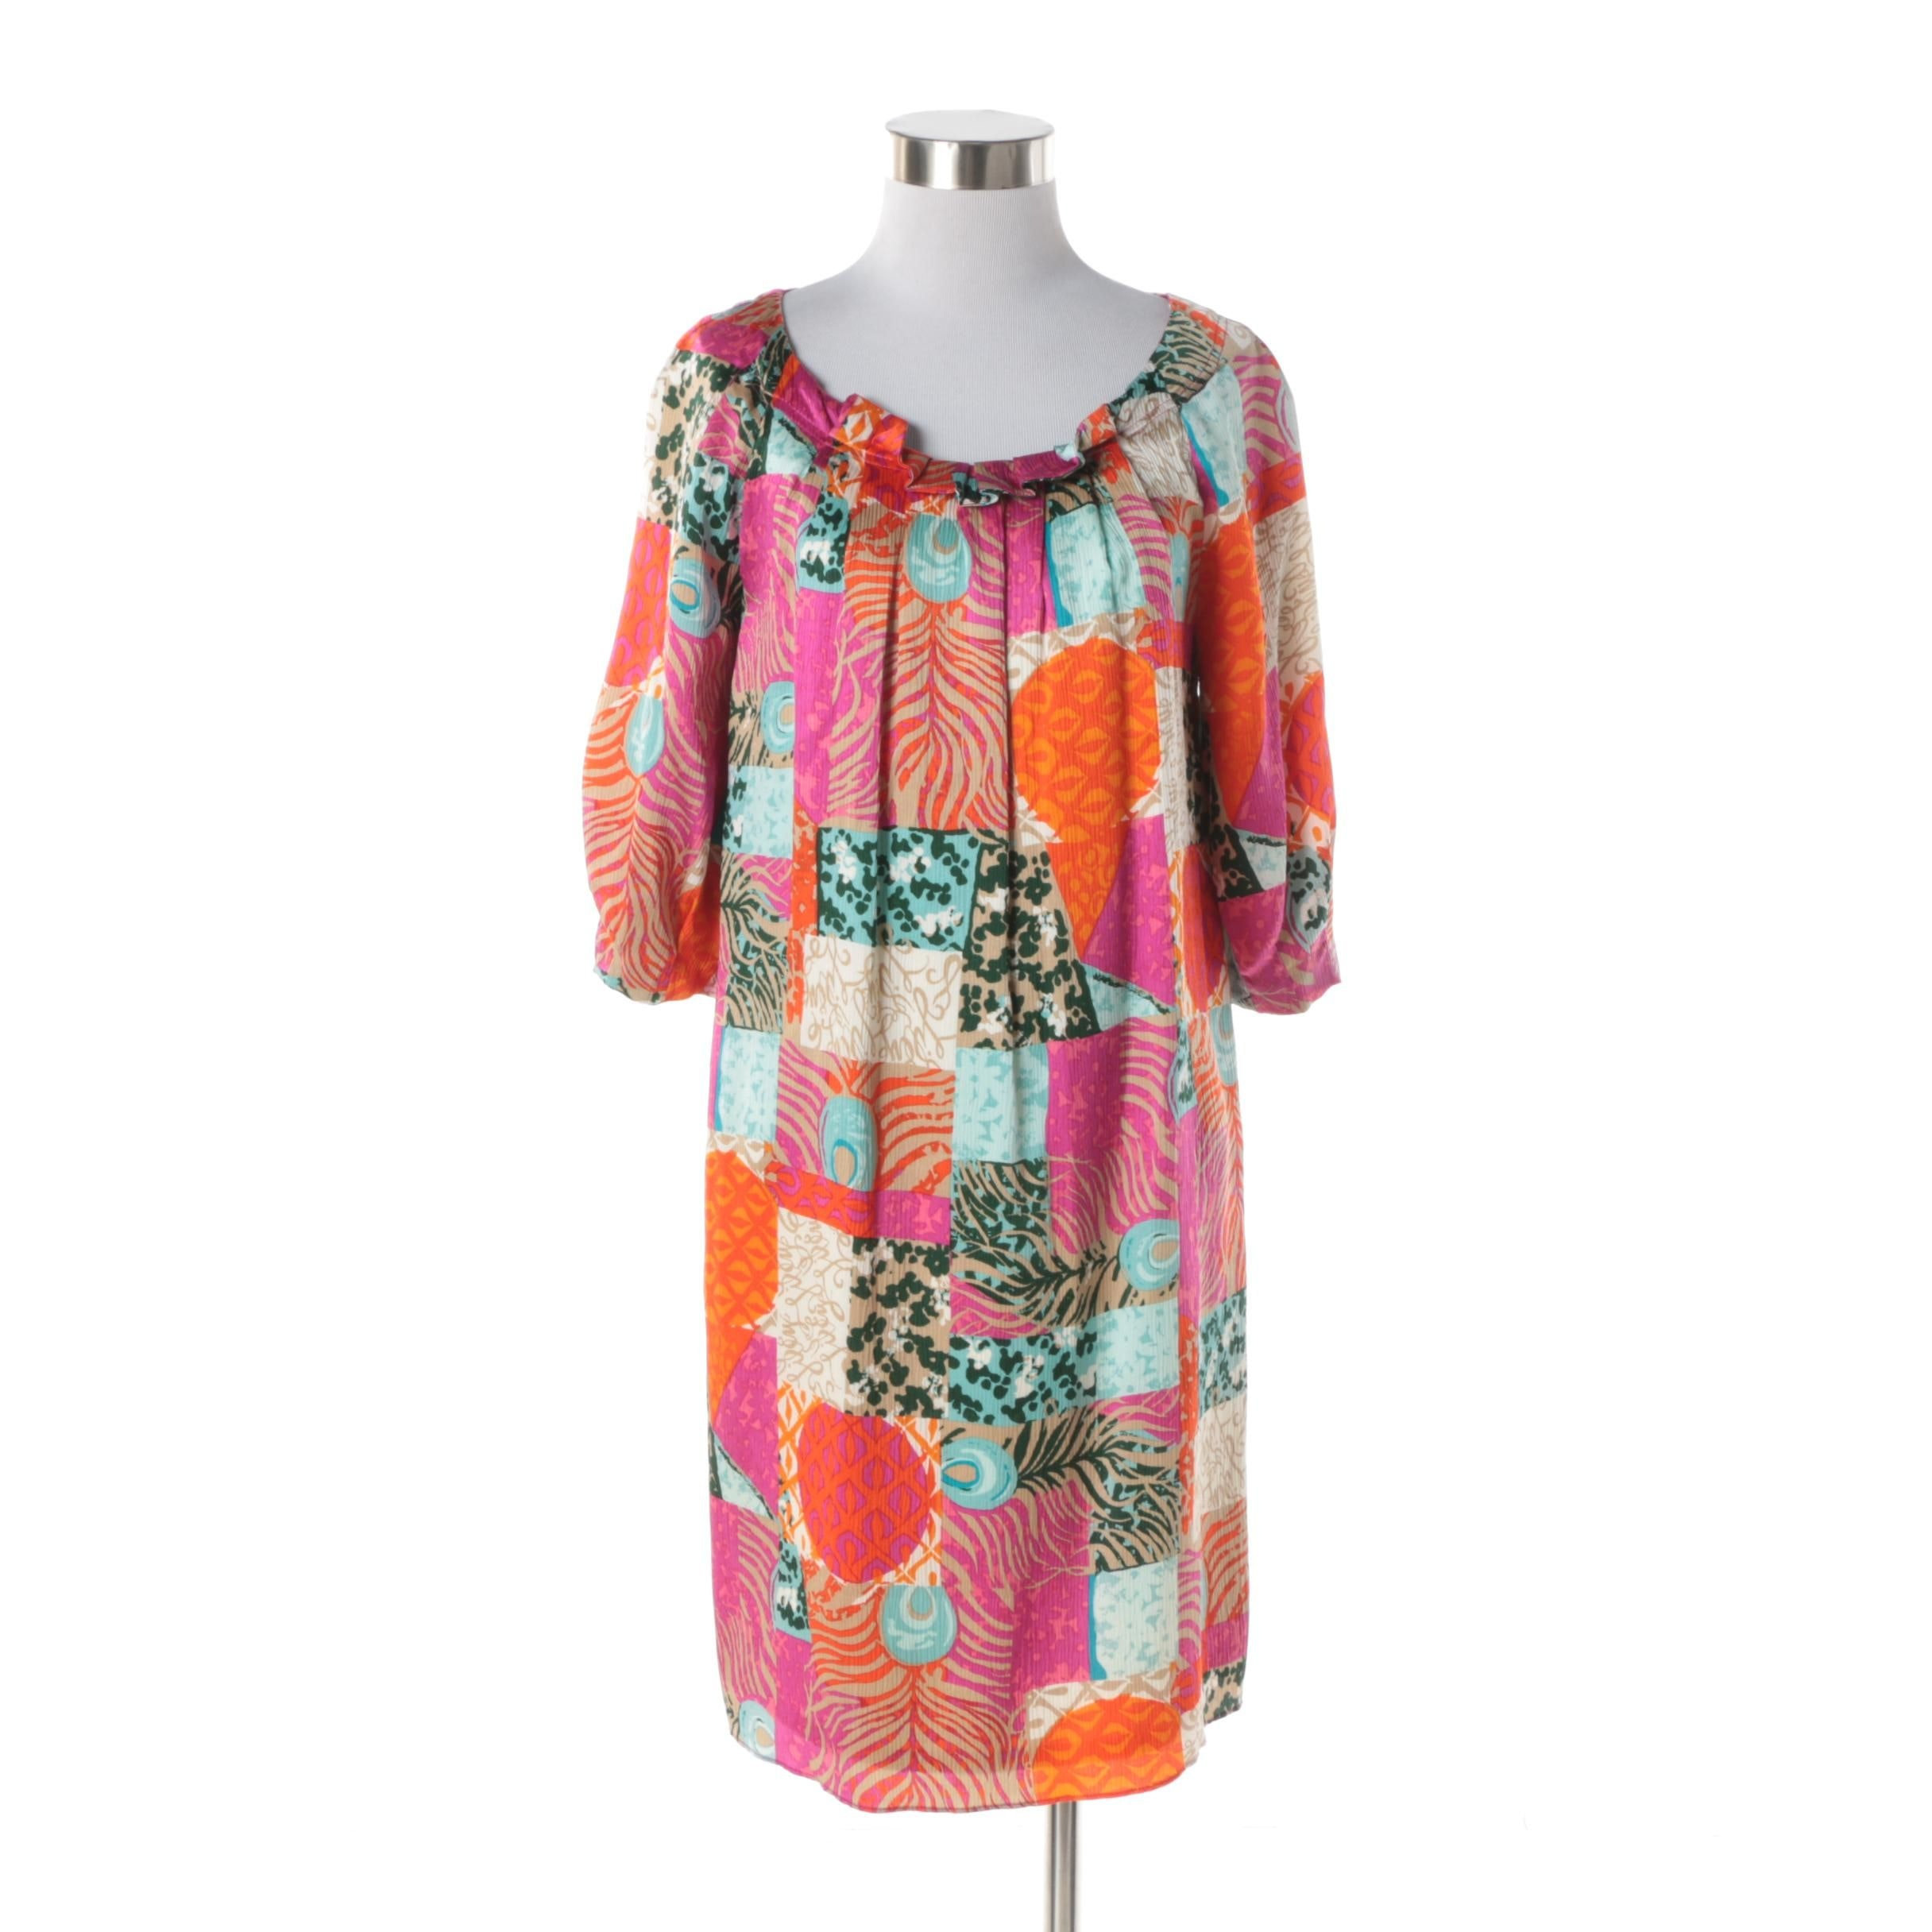 Women's Lilly Pulitzer Multi-Print Silk Dress